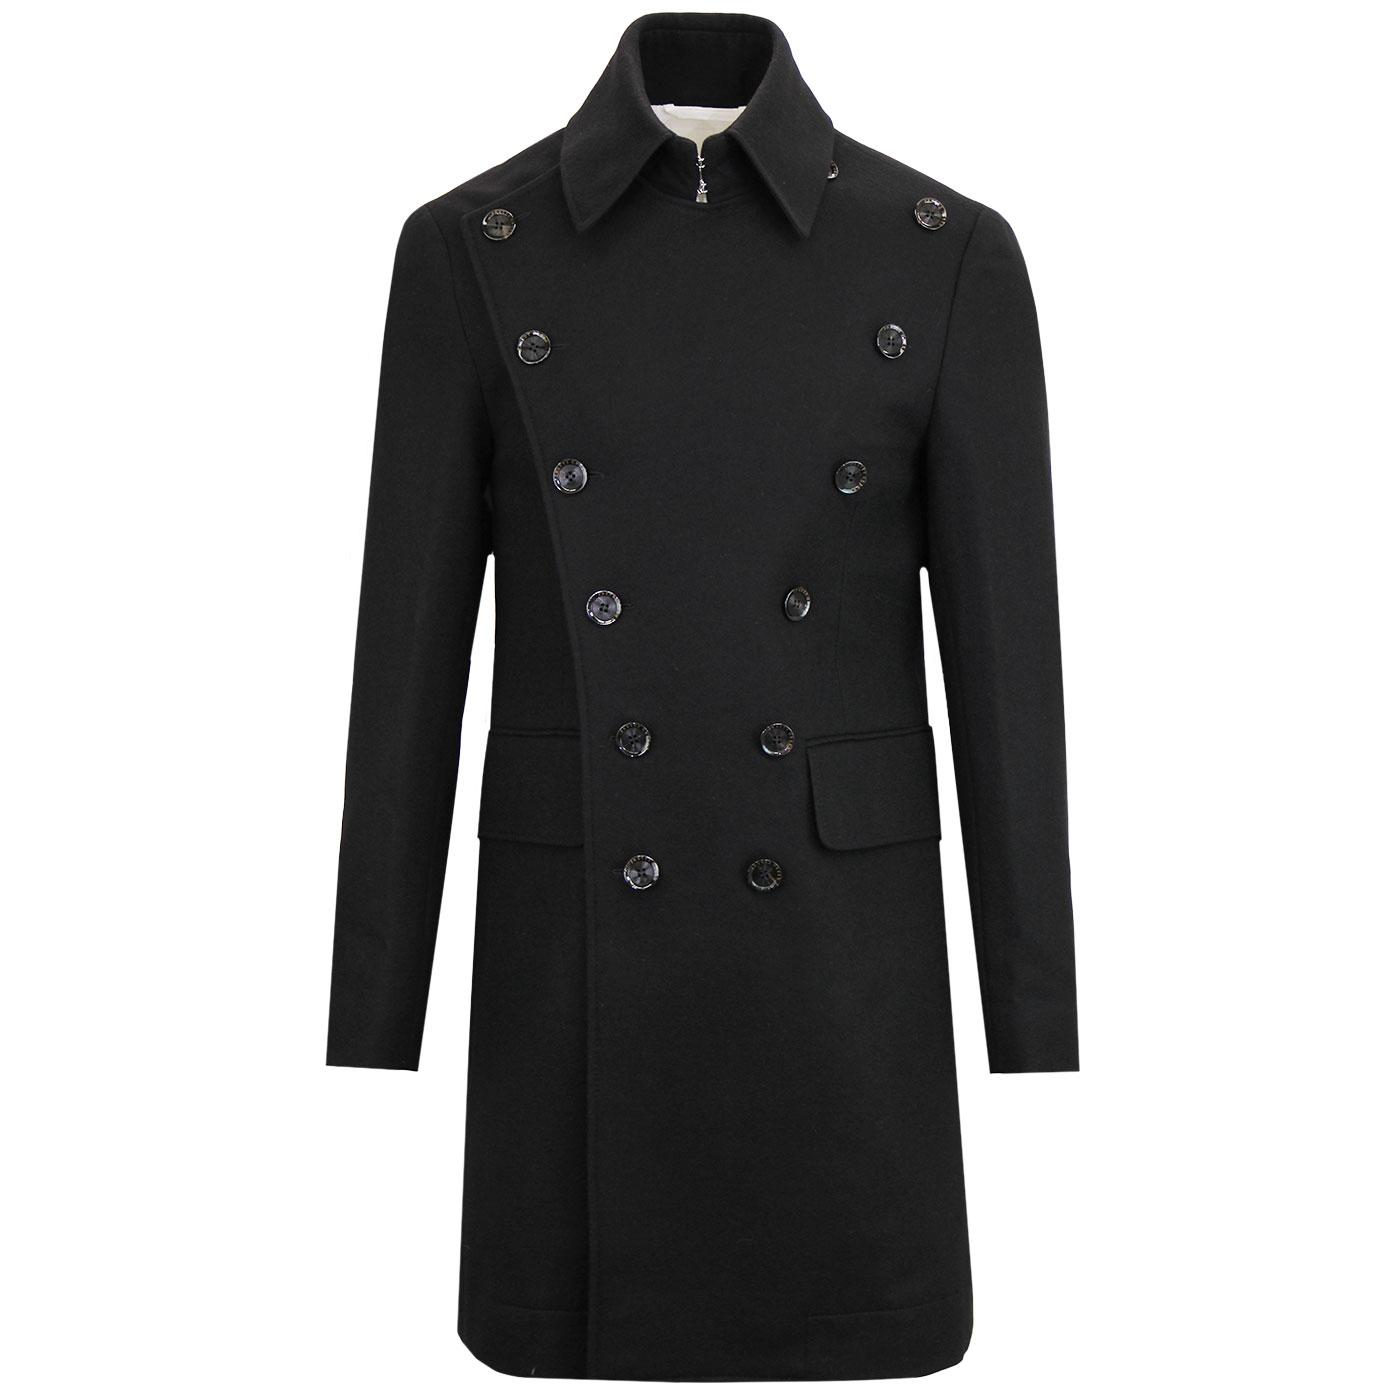 PRETTY GREEN x THE BEATLES George Harrison Coat B